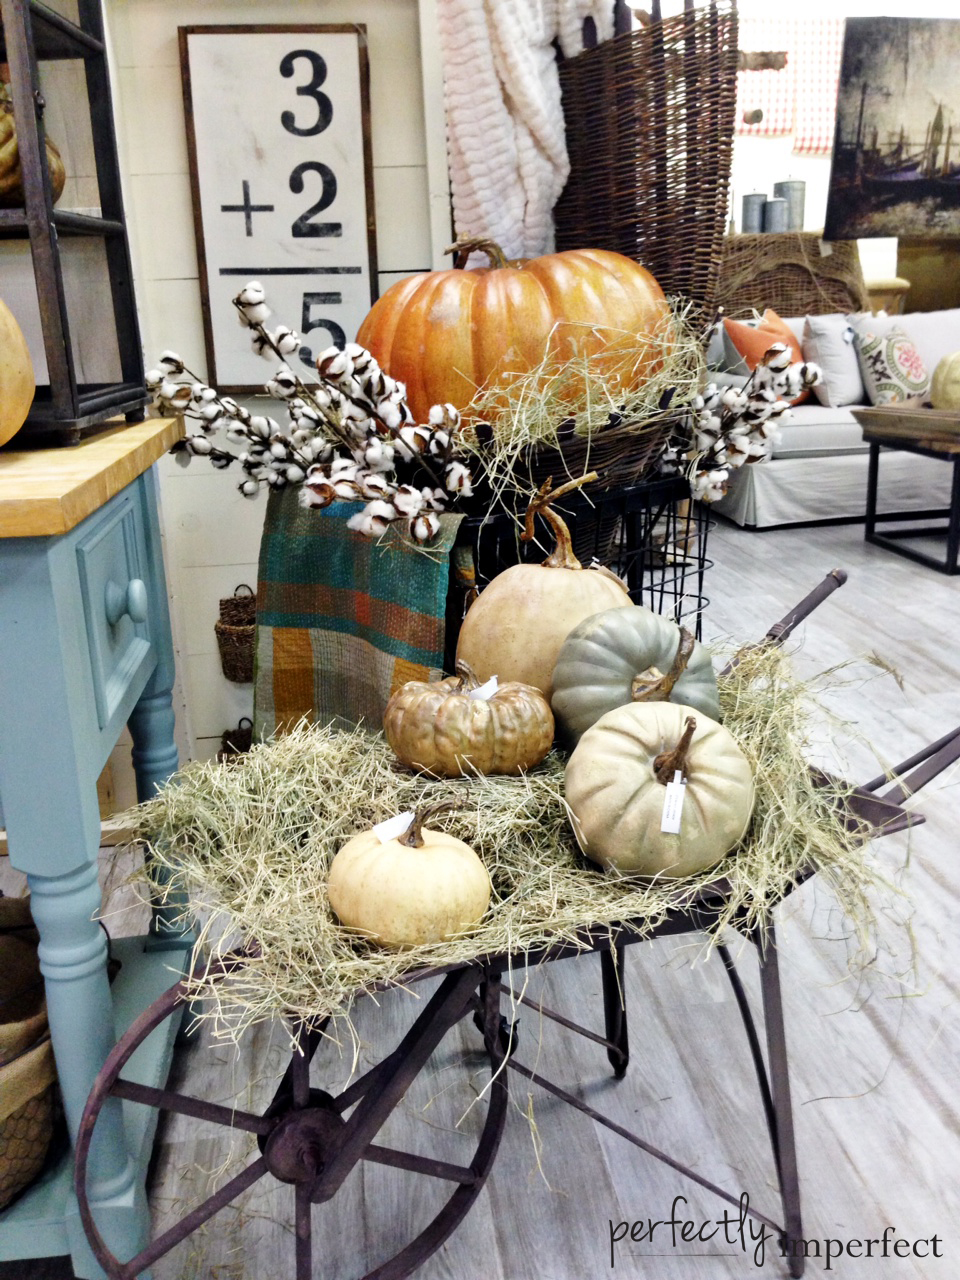 Perfectly Imperfect Fall Display 2